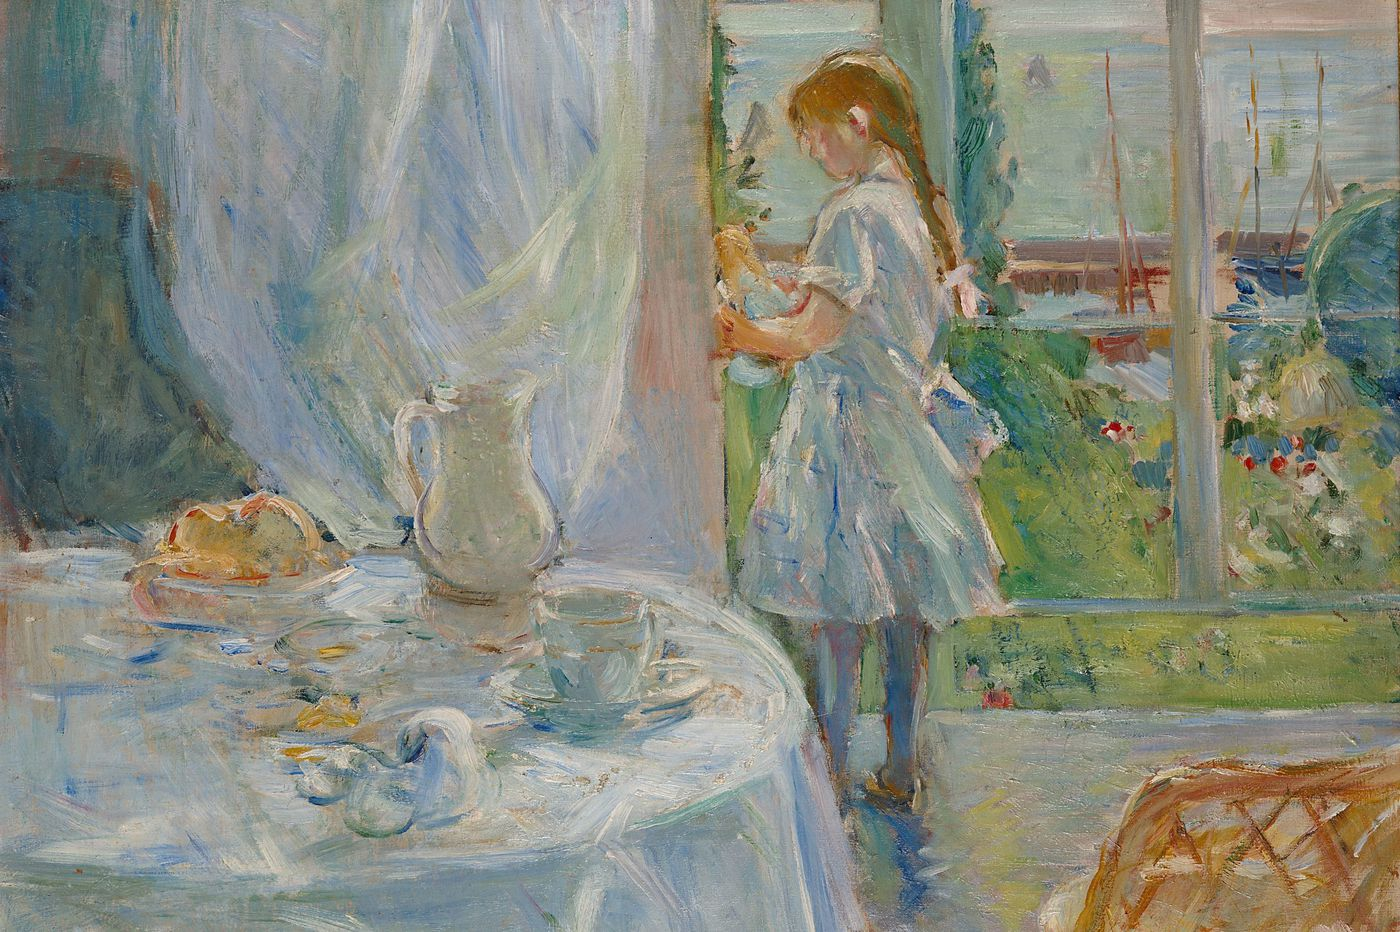 Philadelphia's art museums feature Dior, Berthe Morisot, Winslow Homer, more in fall 2018